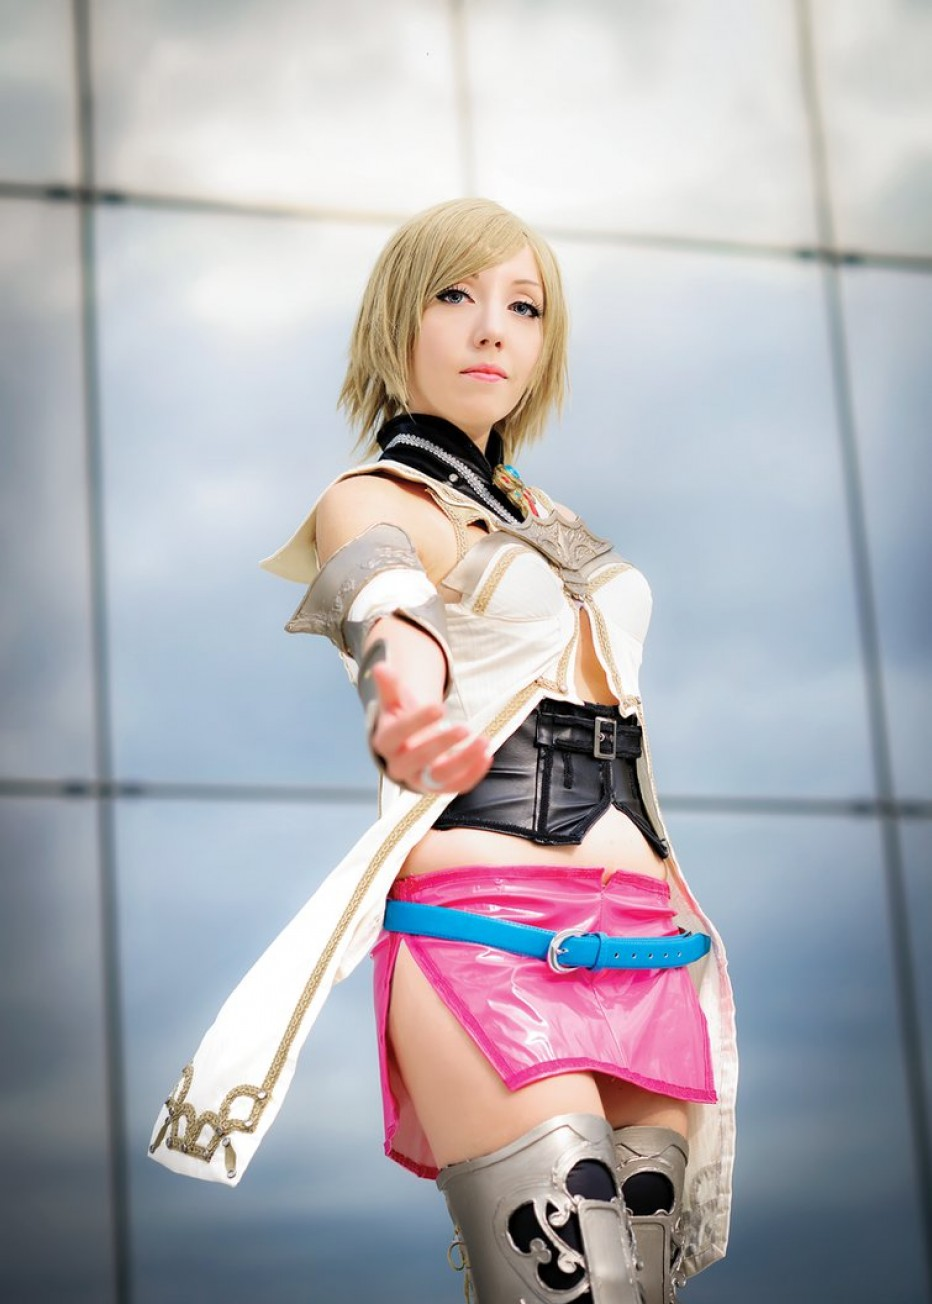 Final-Fantasy-XII-Ashe-Cosplay-Gamers-Heroes-2.jpg